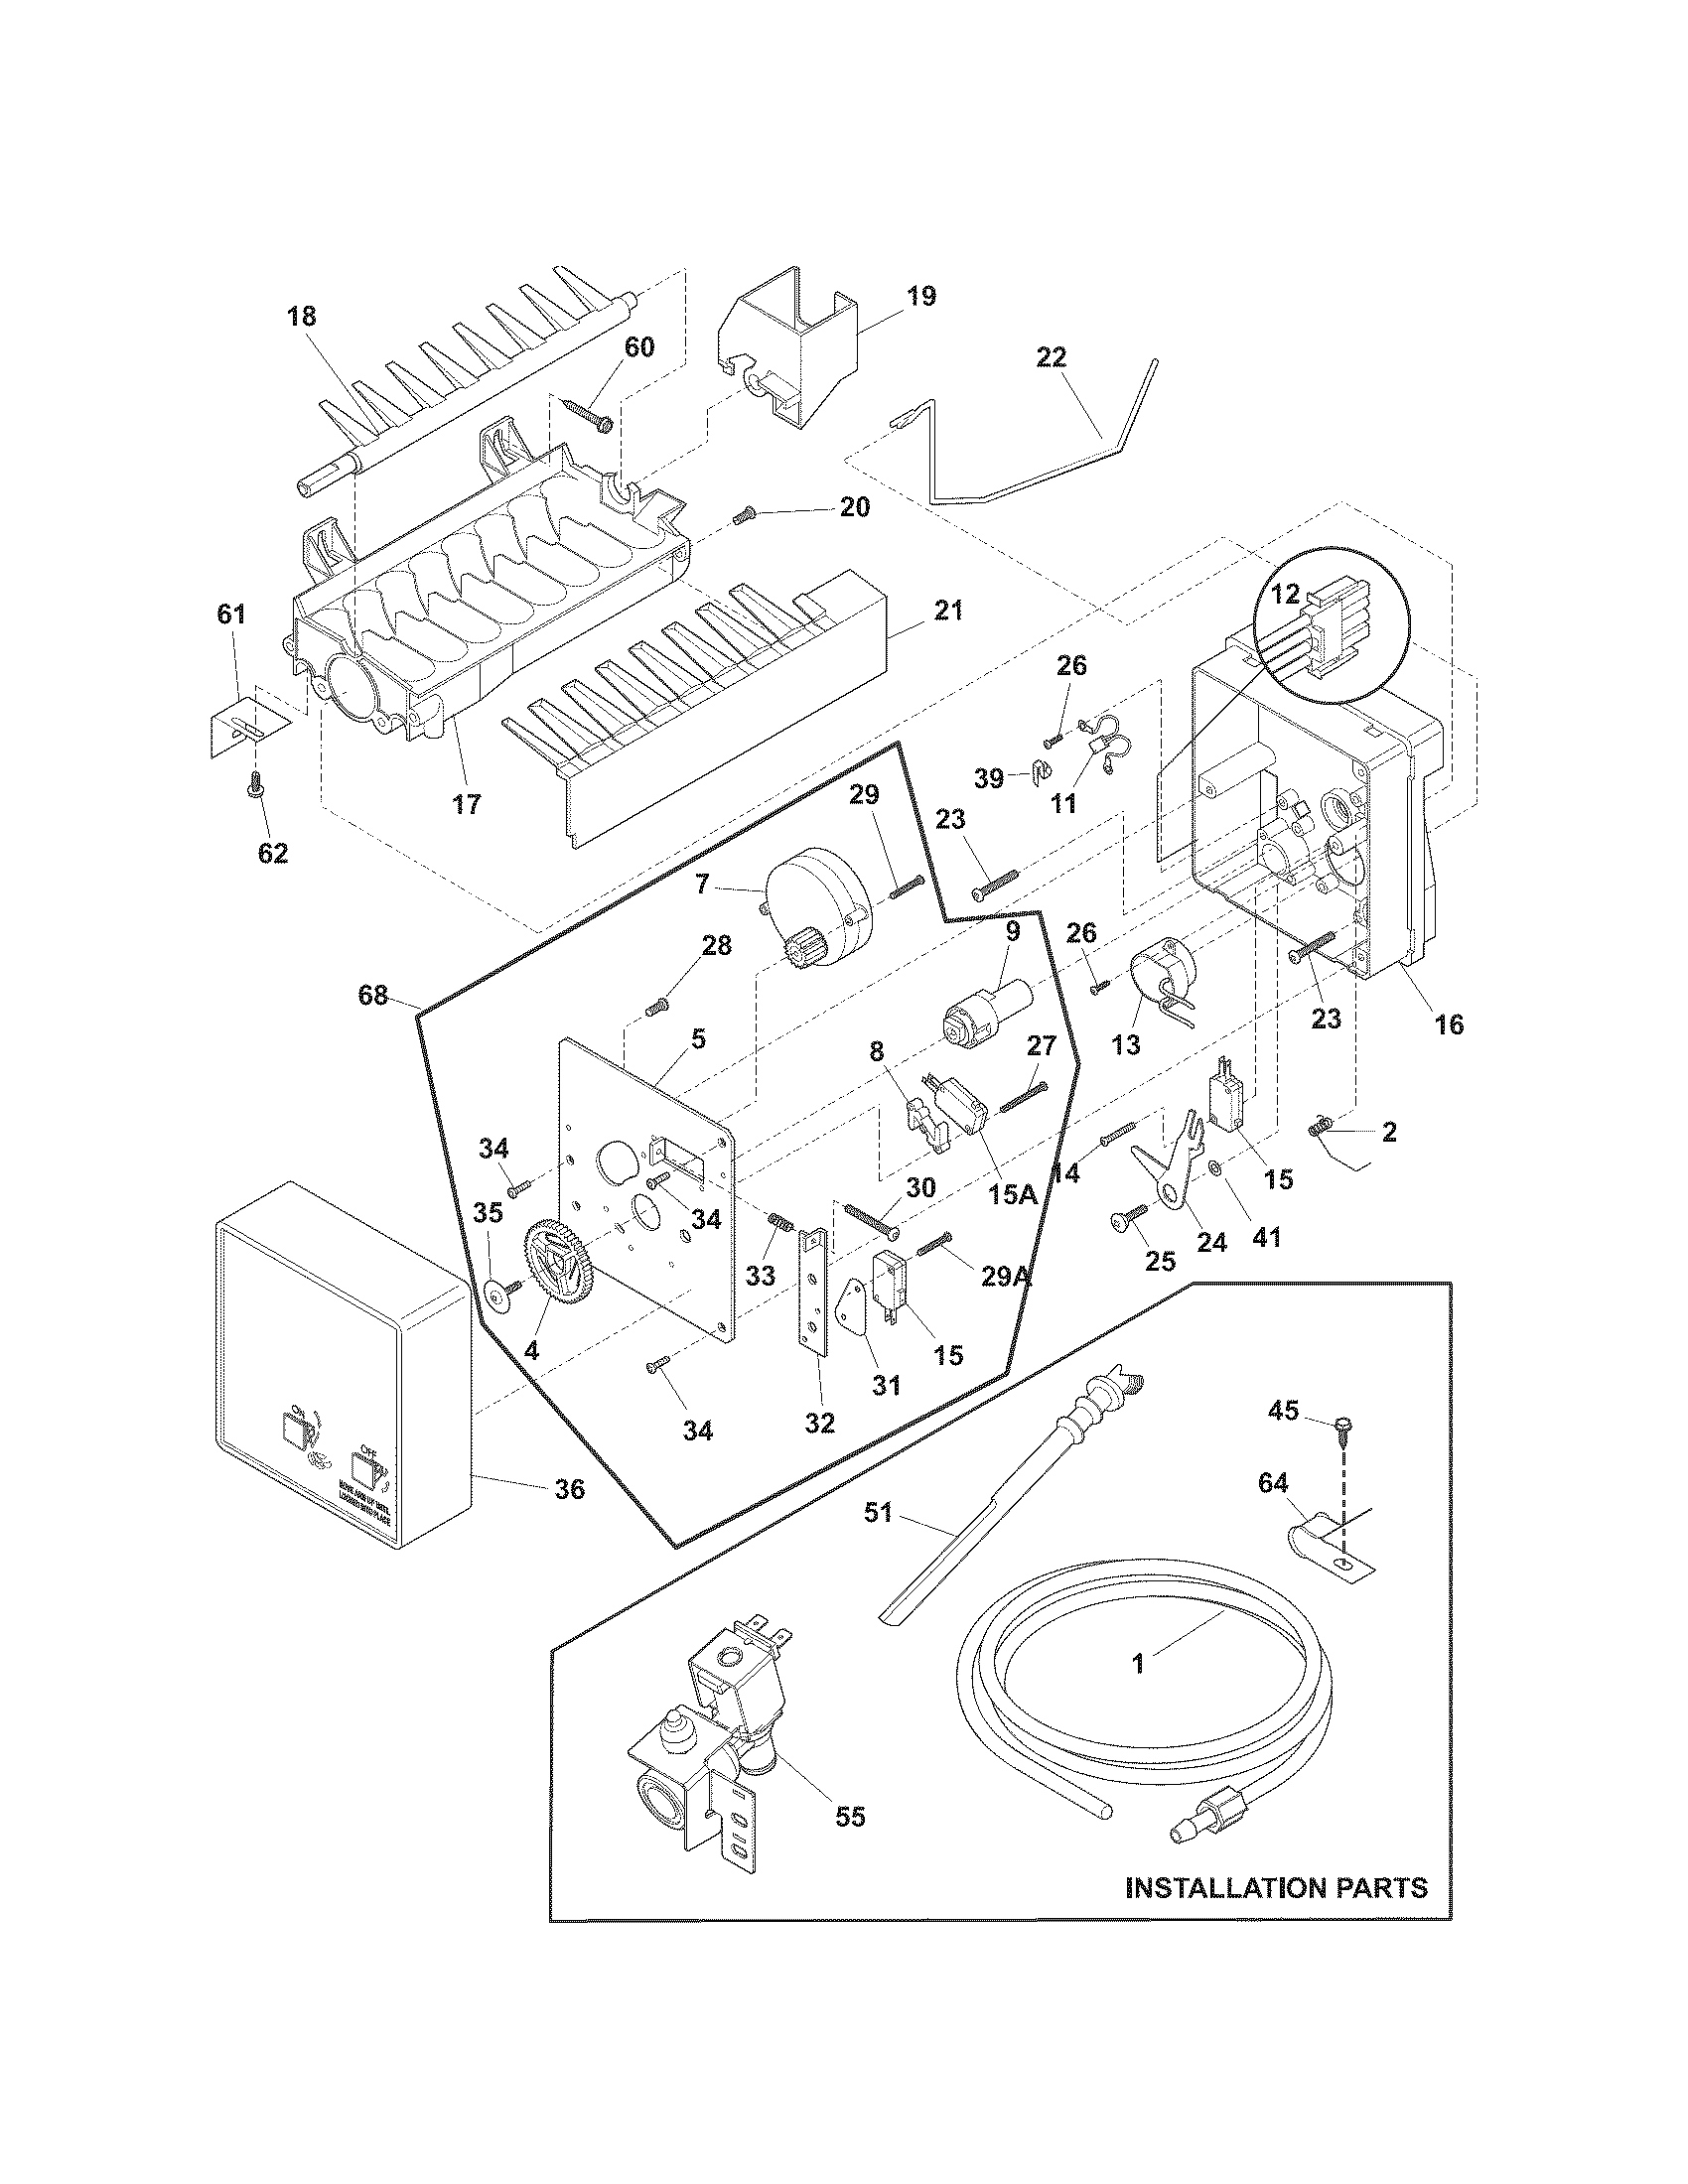 ICE MAKER Diagram & Parts List for Model 25378829012